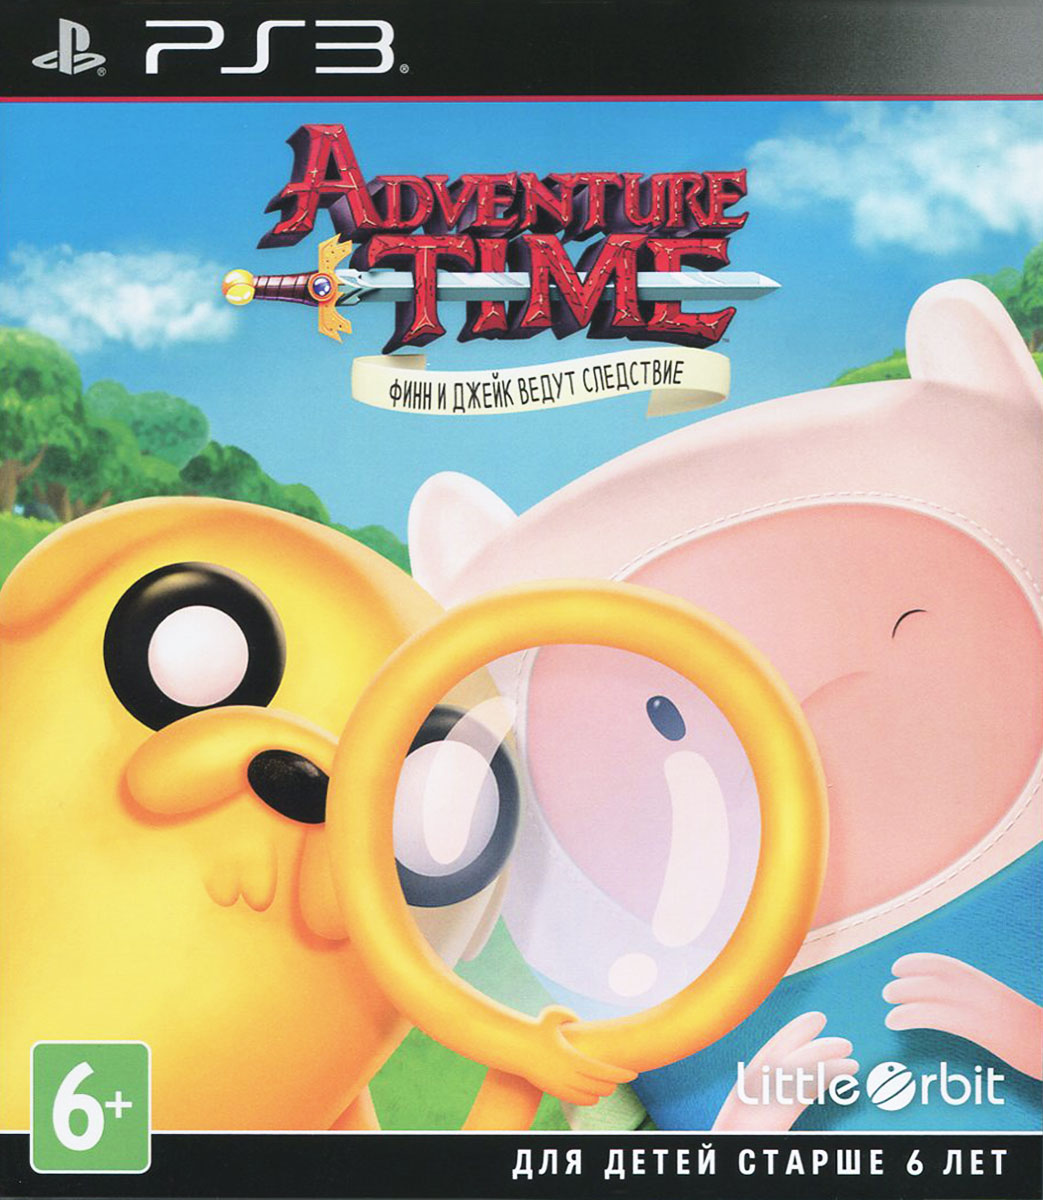 Adventure Time: Finn and Jake Investigations (PS3), Vicious Cycle Software